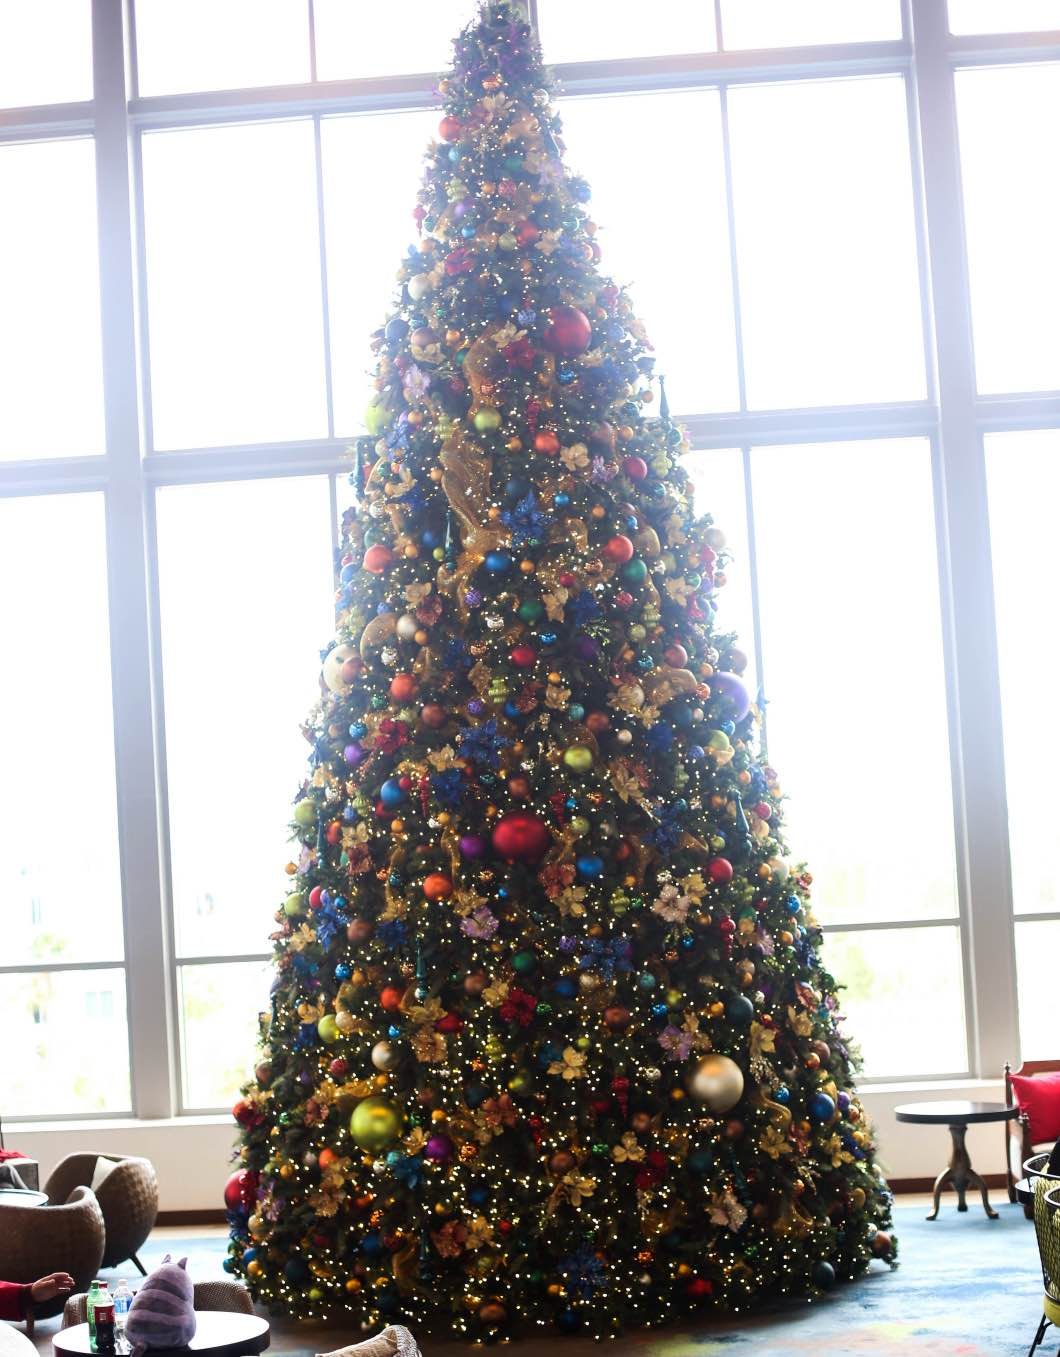 ChristmasTreeLoewsSapphire - Holiday Attractions in Orlando by Atlanta travel blogger Happily Hughes